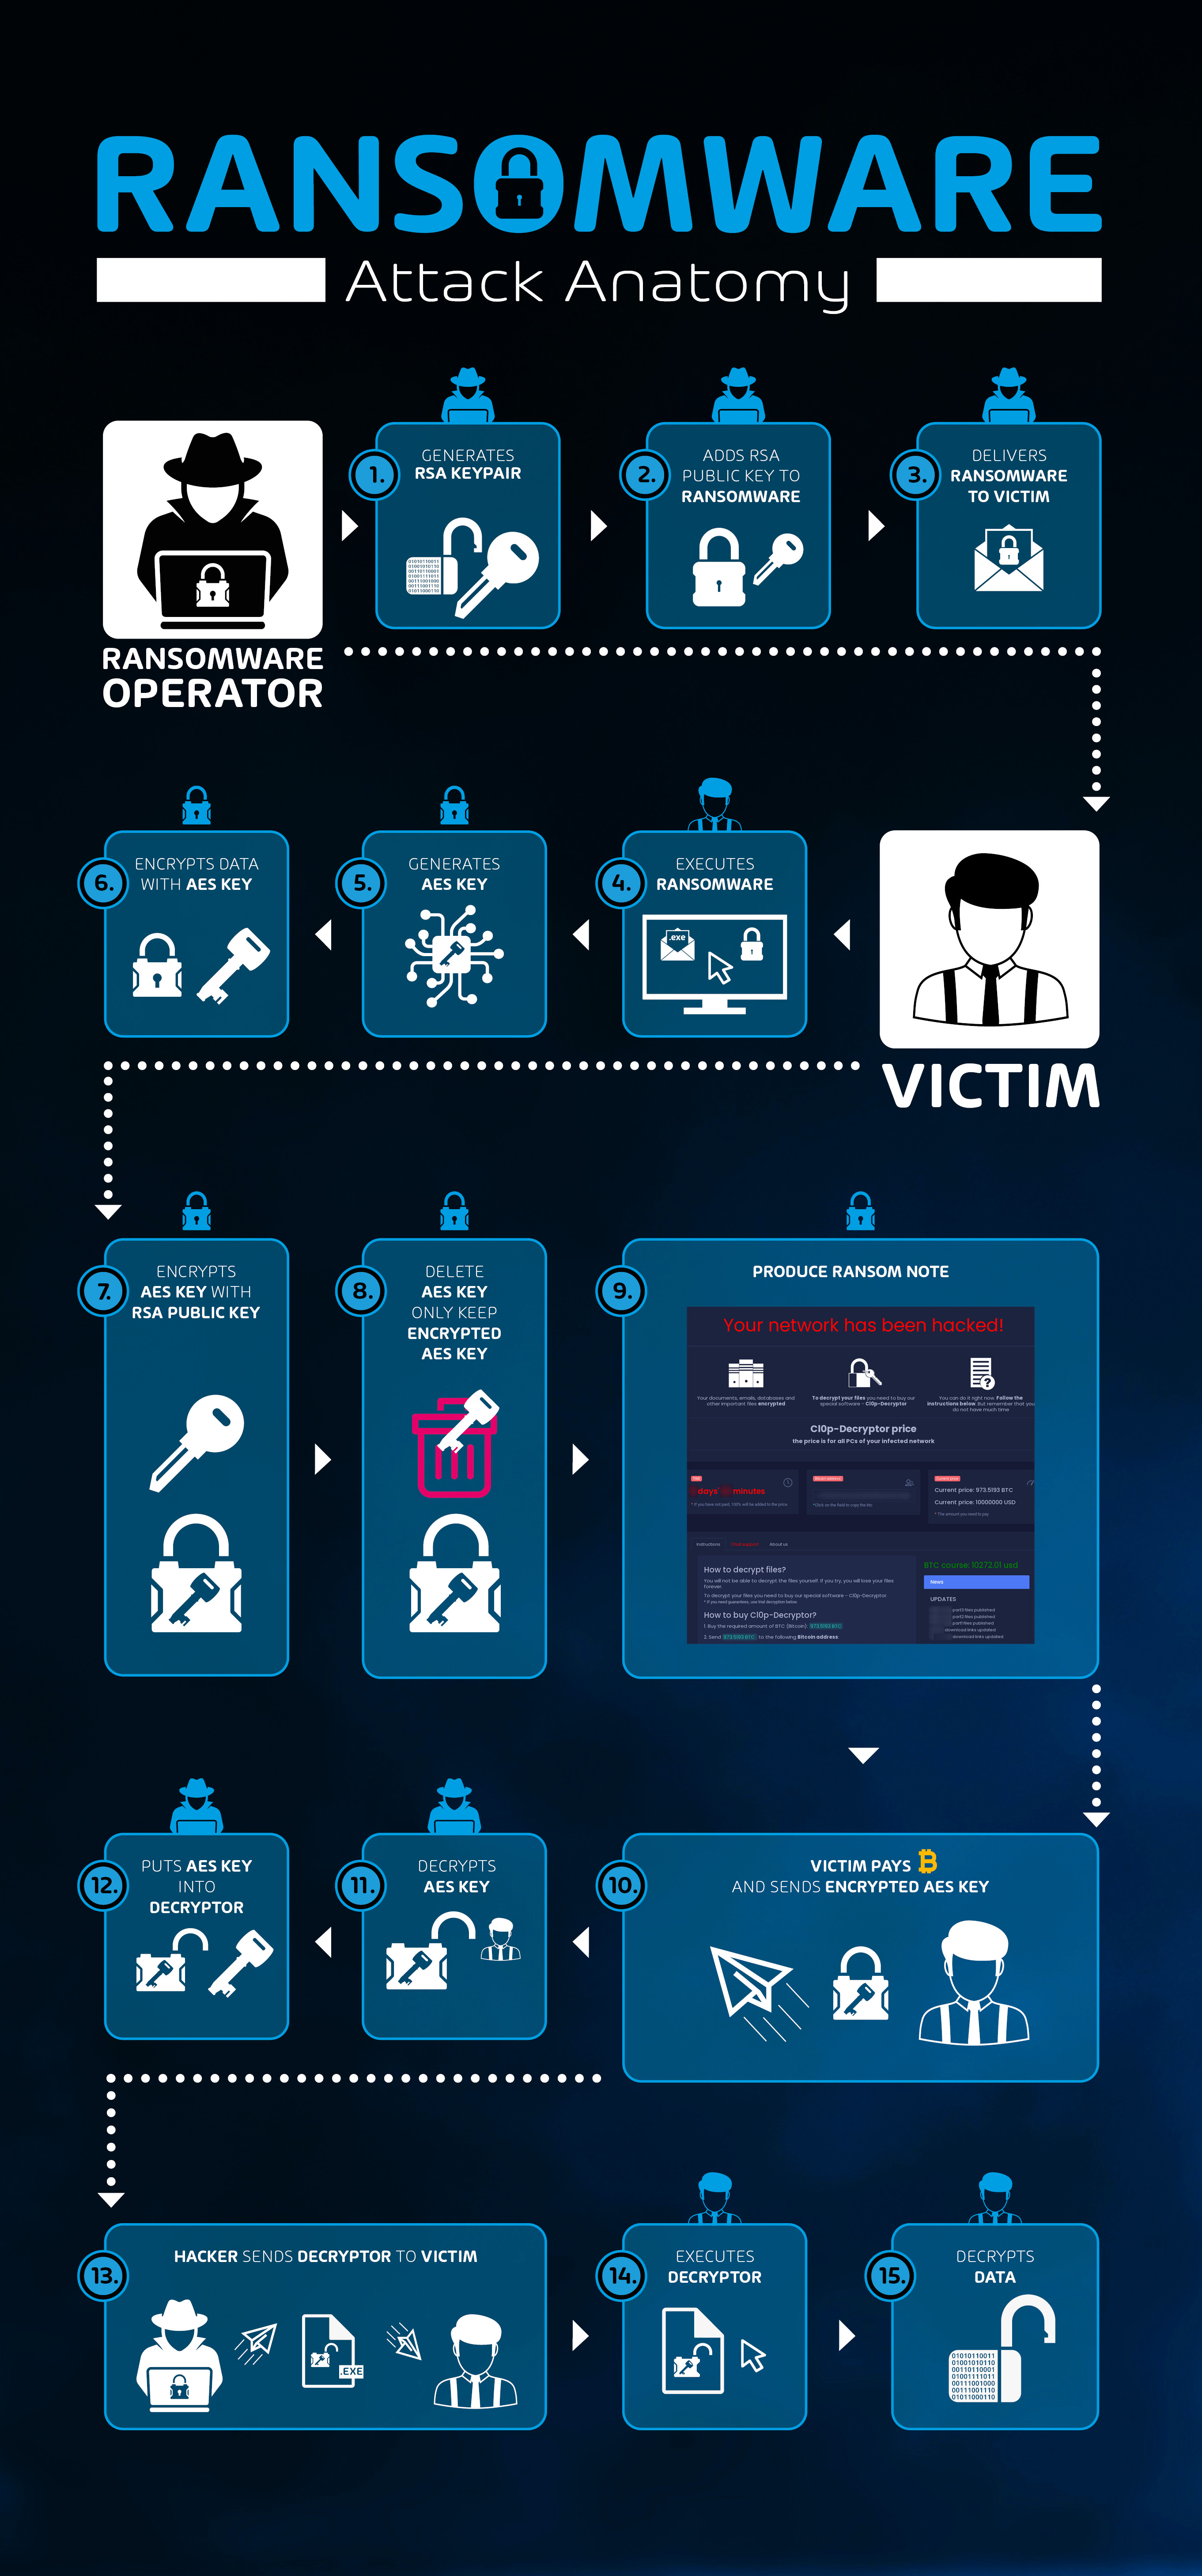 Ransomware interaction flow